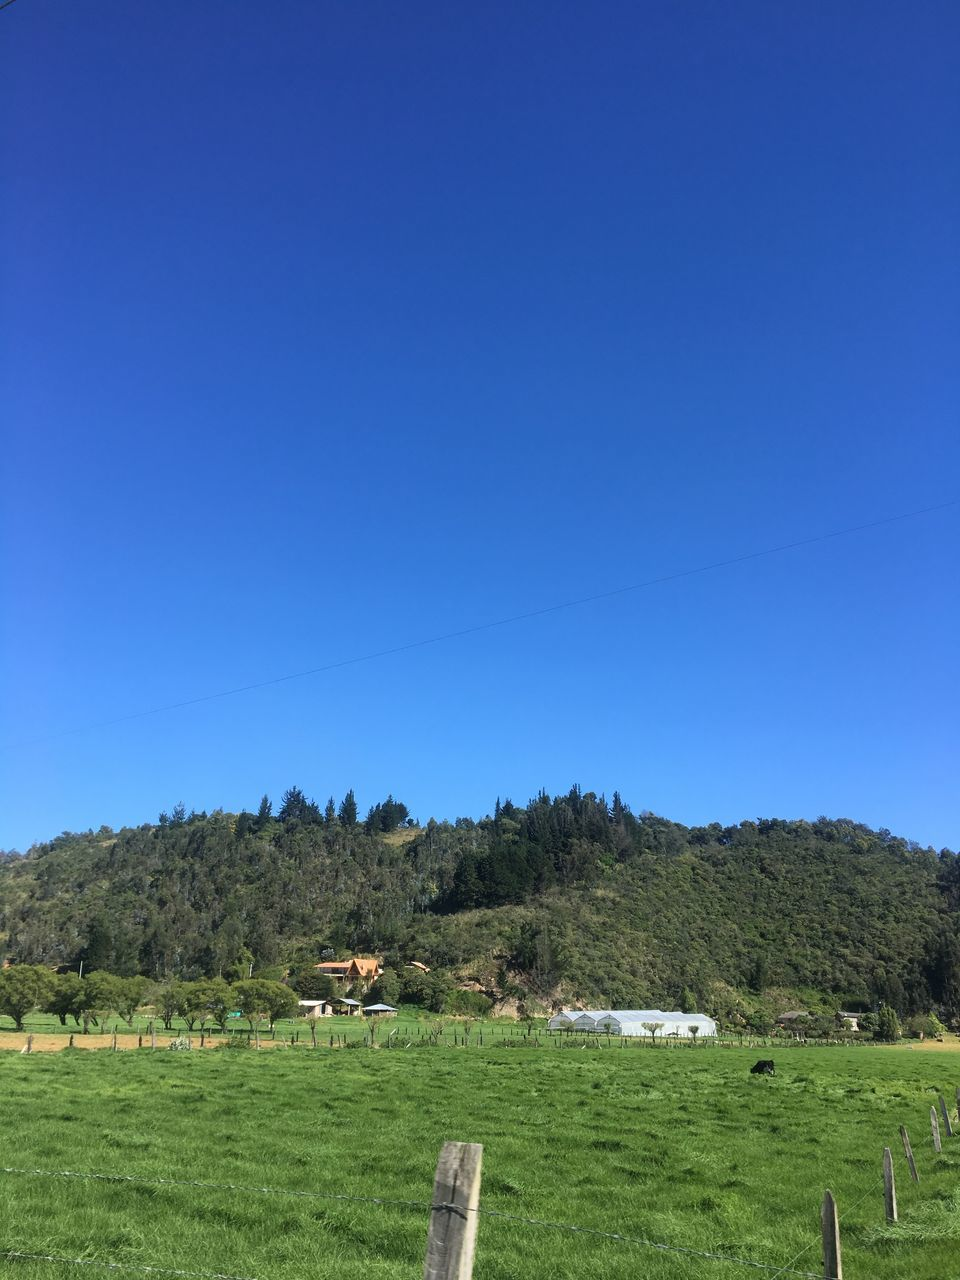 blue, copy space, clear sky, field, nature, landscape, no people, tranquility, tree, tranquil scene, grass, beauty in nature, scenics, outdoors, day, sky, hay bale